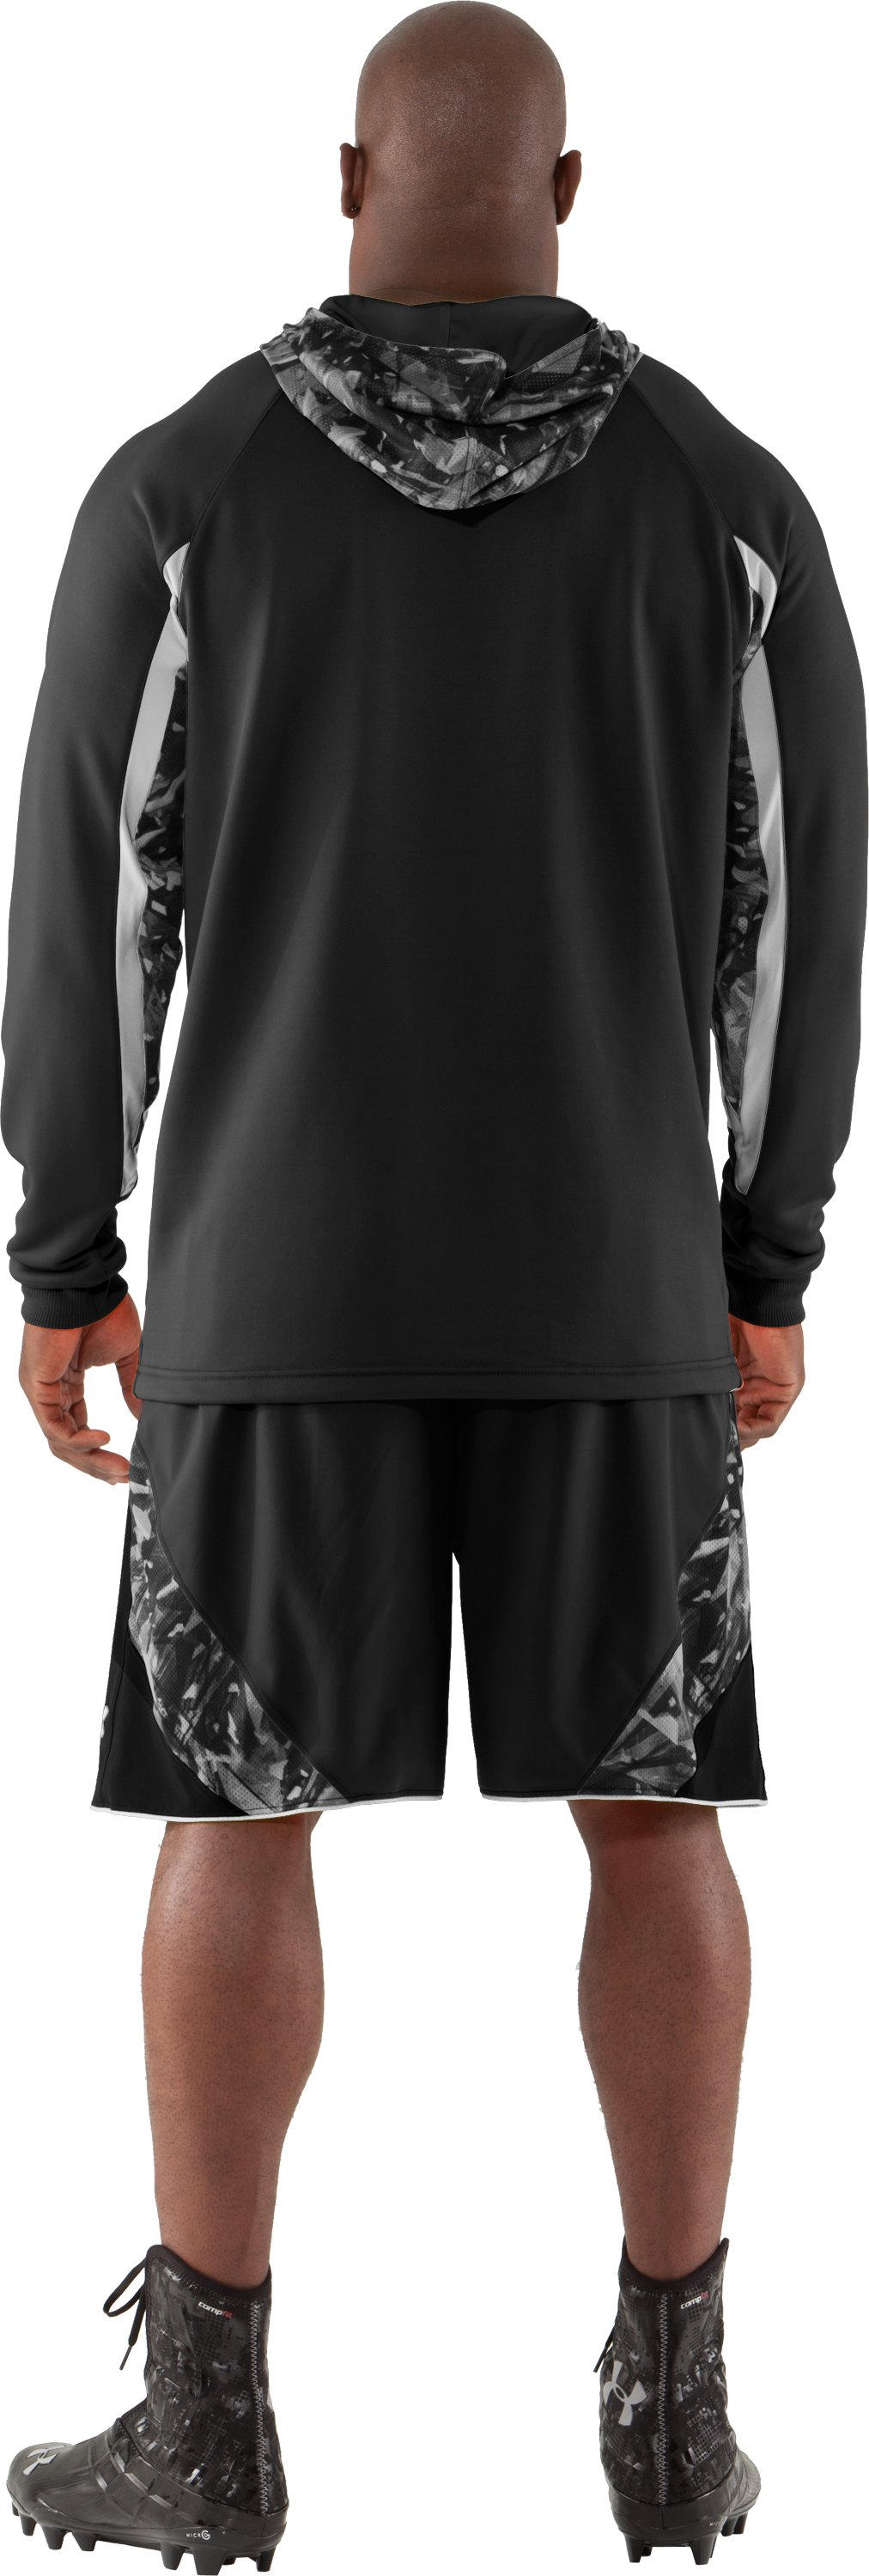 Men's NFL Combine Authentic Hoodie, Black , Back